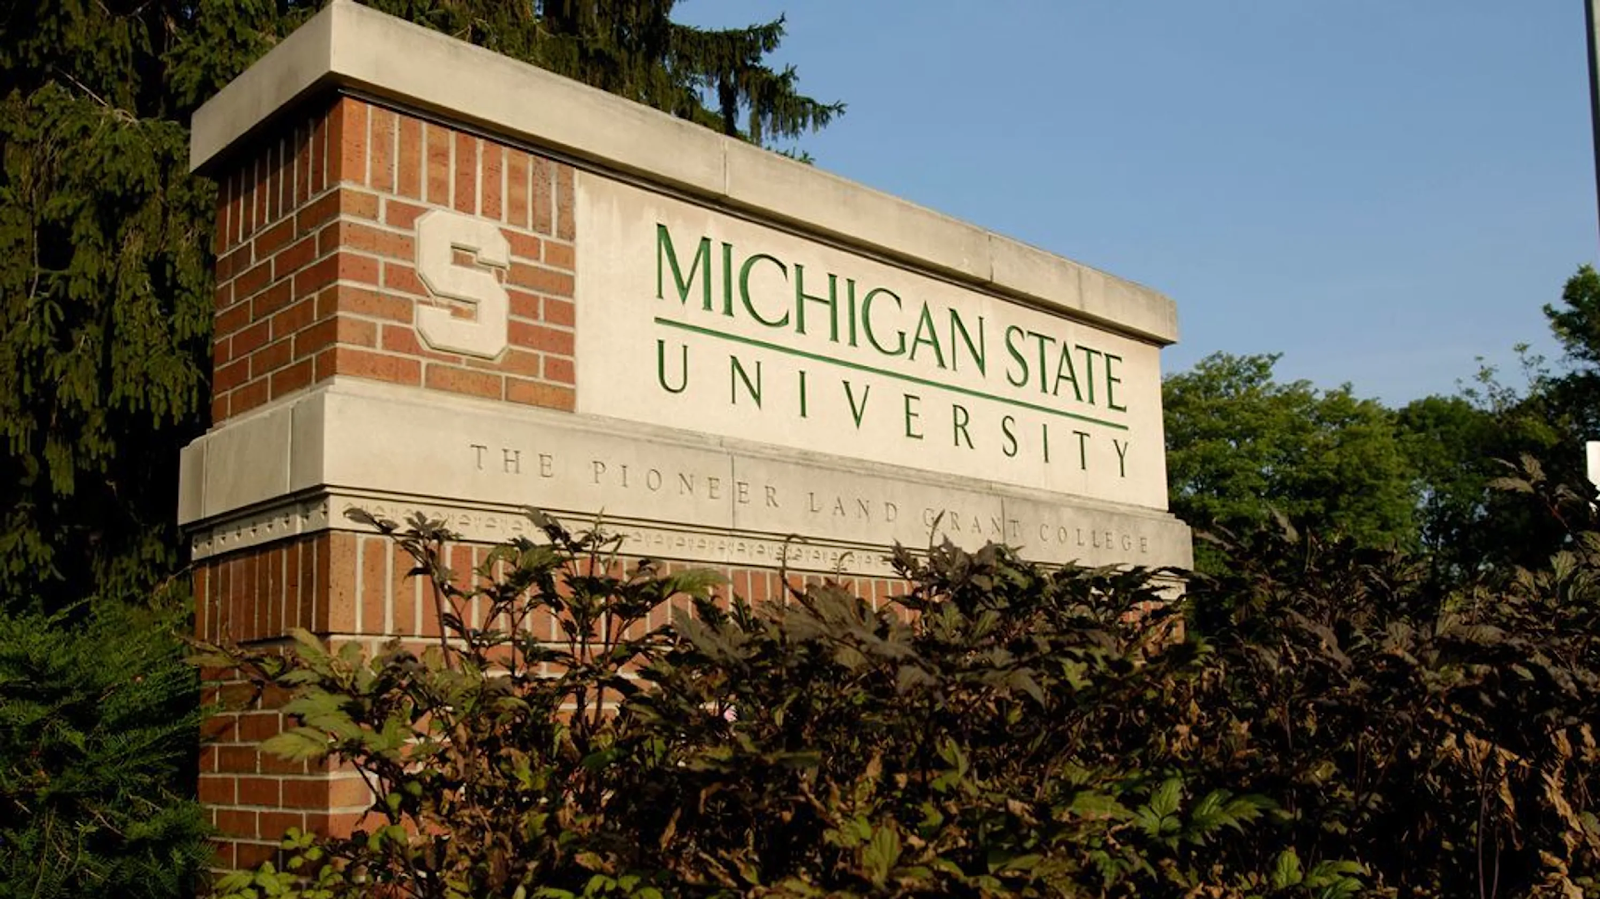 Image of MSU sign